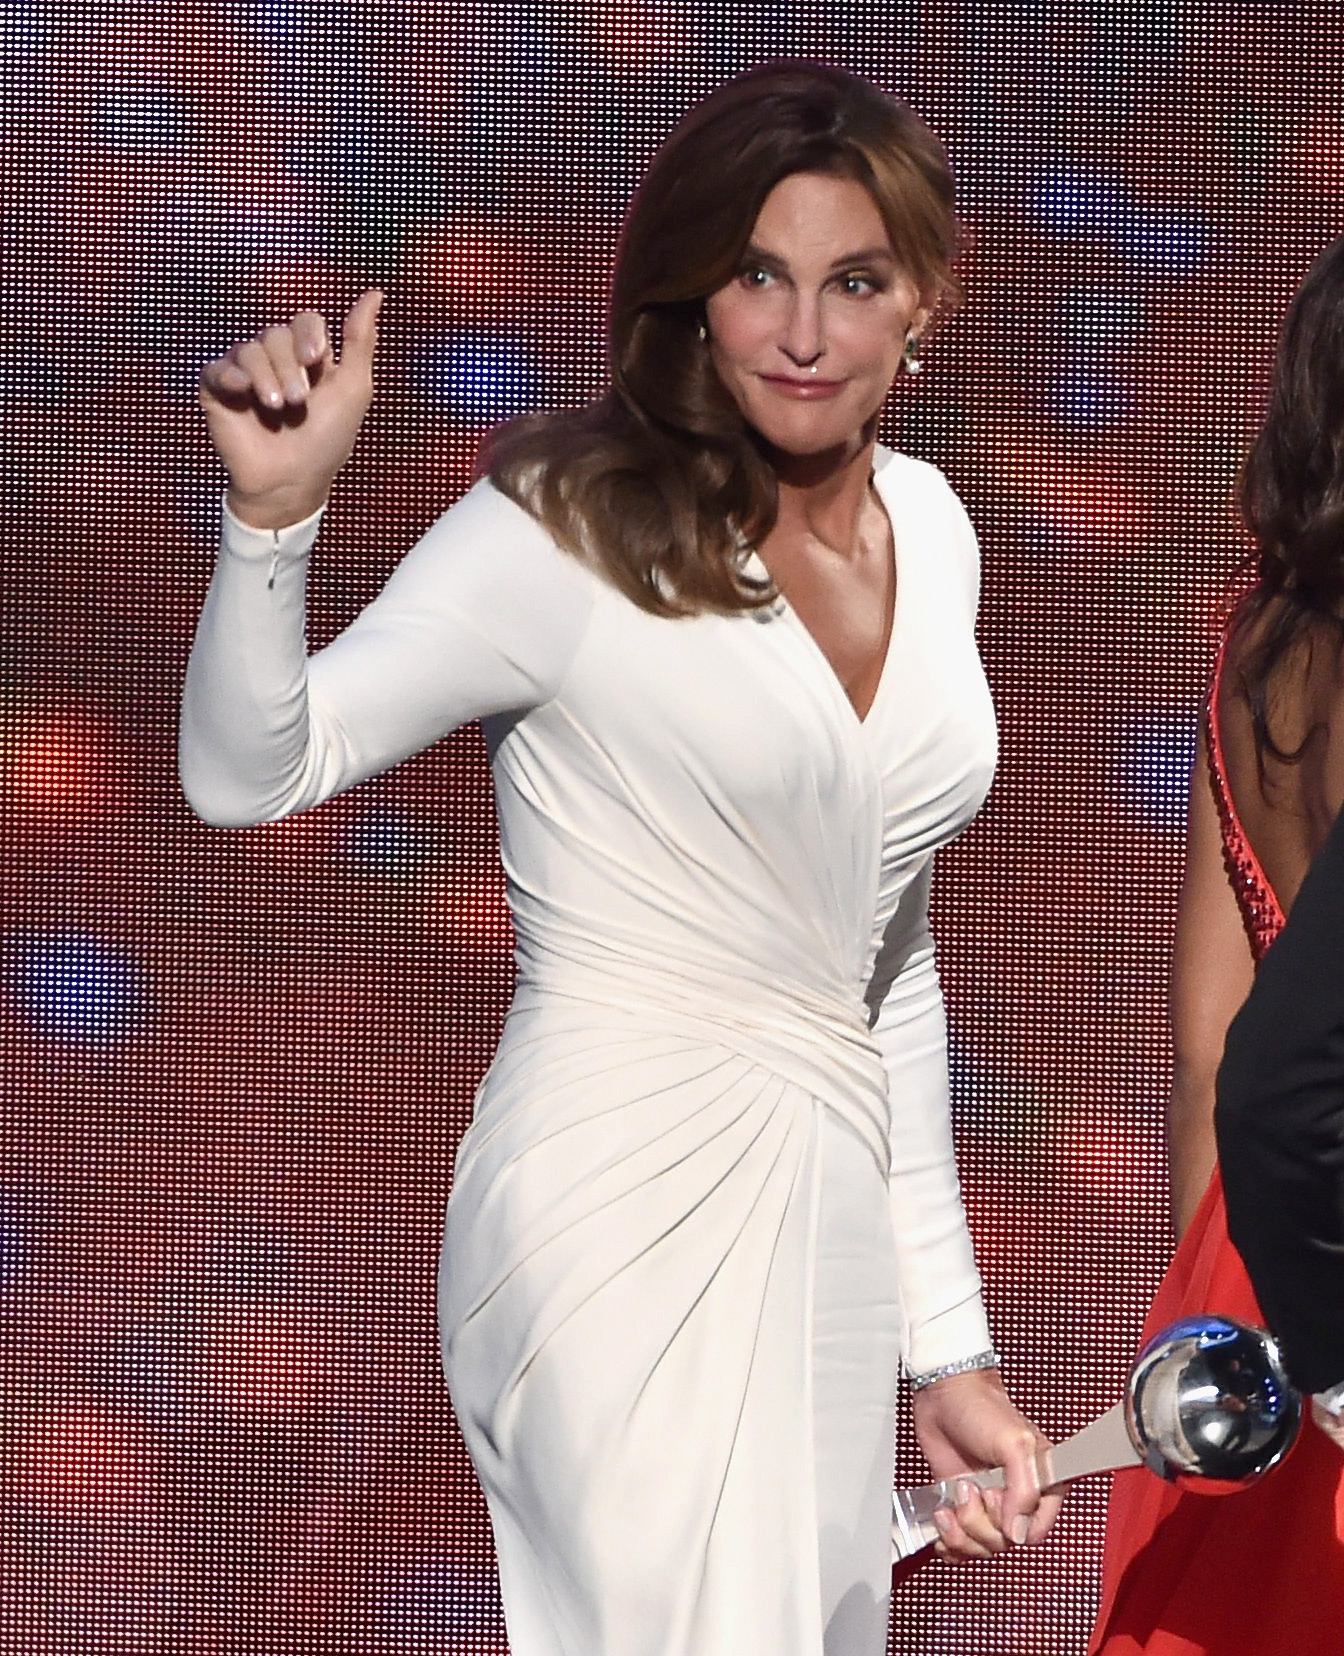 Caitlyn Jenner Halloween costume: Twitter users skewer costume ...